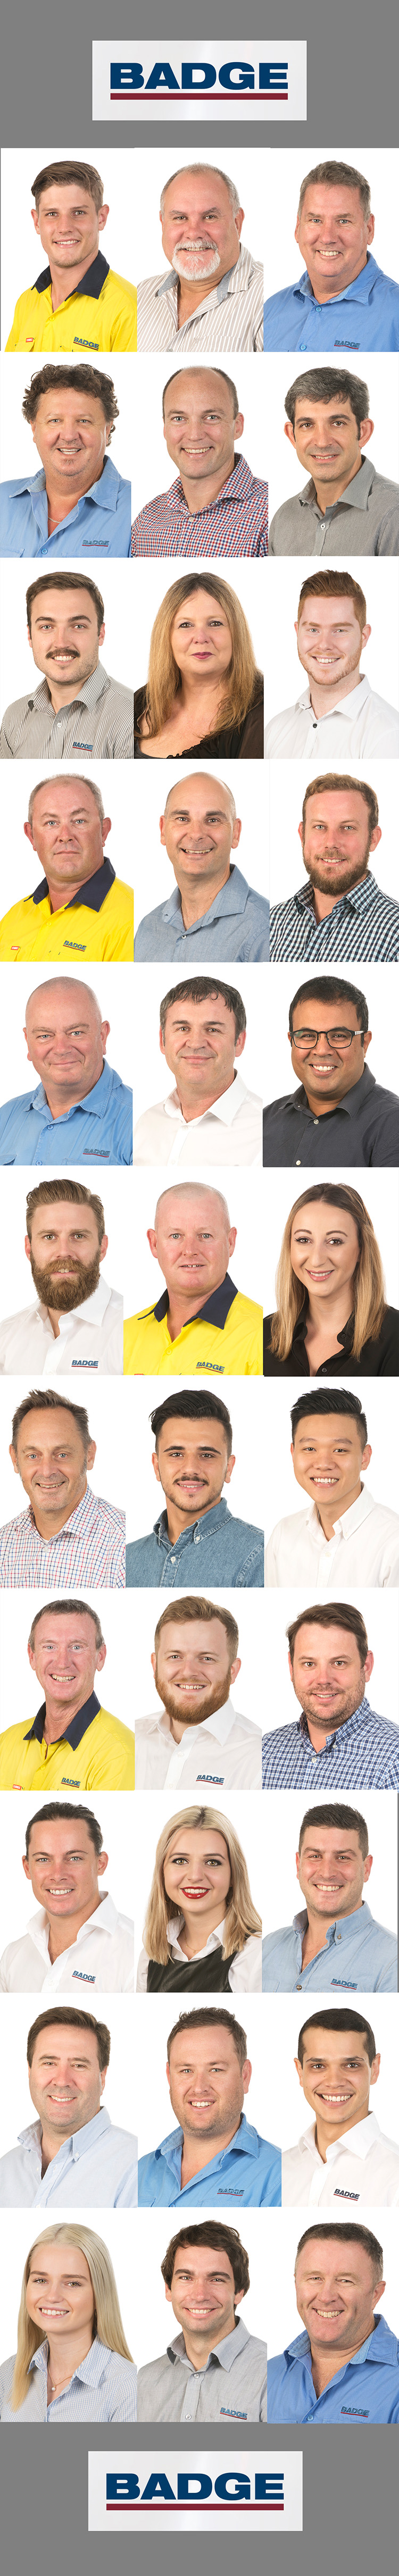 Headshots Brisbane Corporate photos